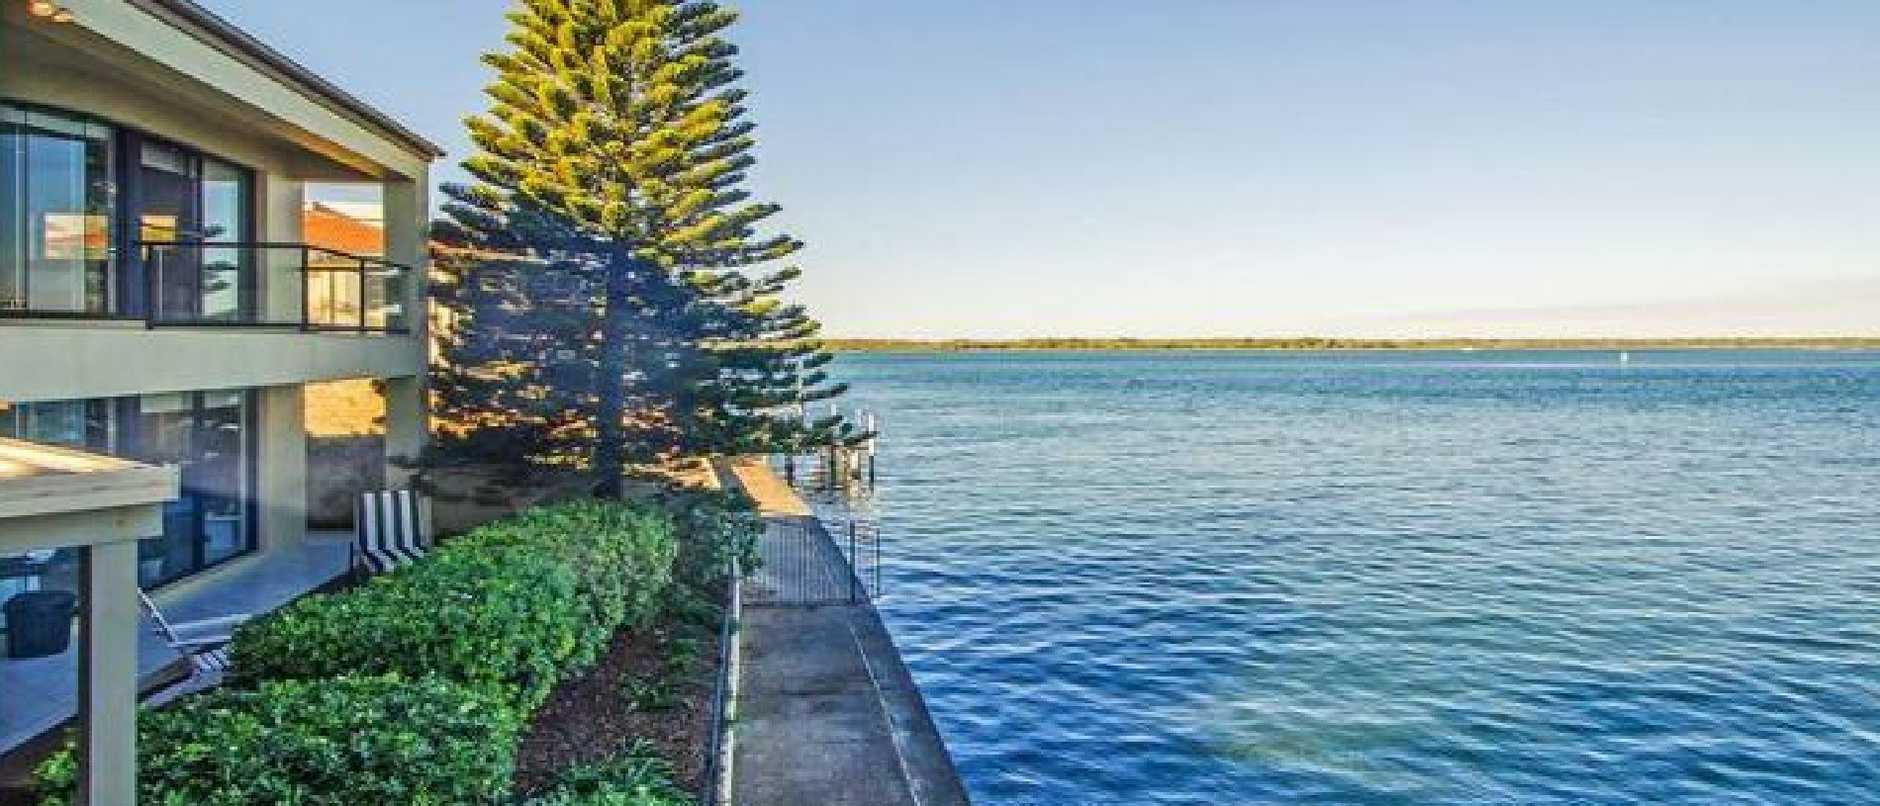 Clive Palmer has added to his collection of homes on the Gold Coast.